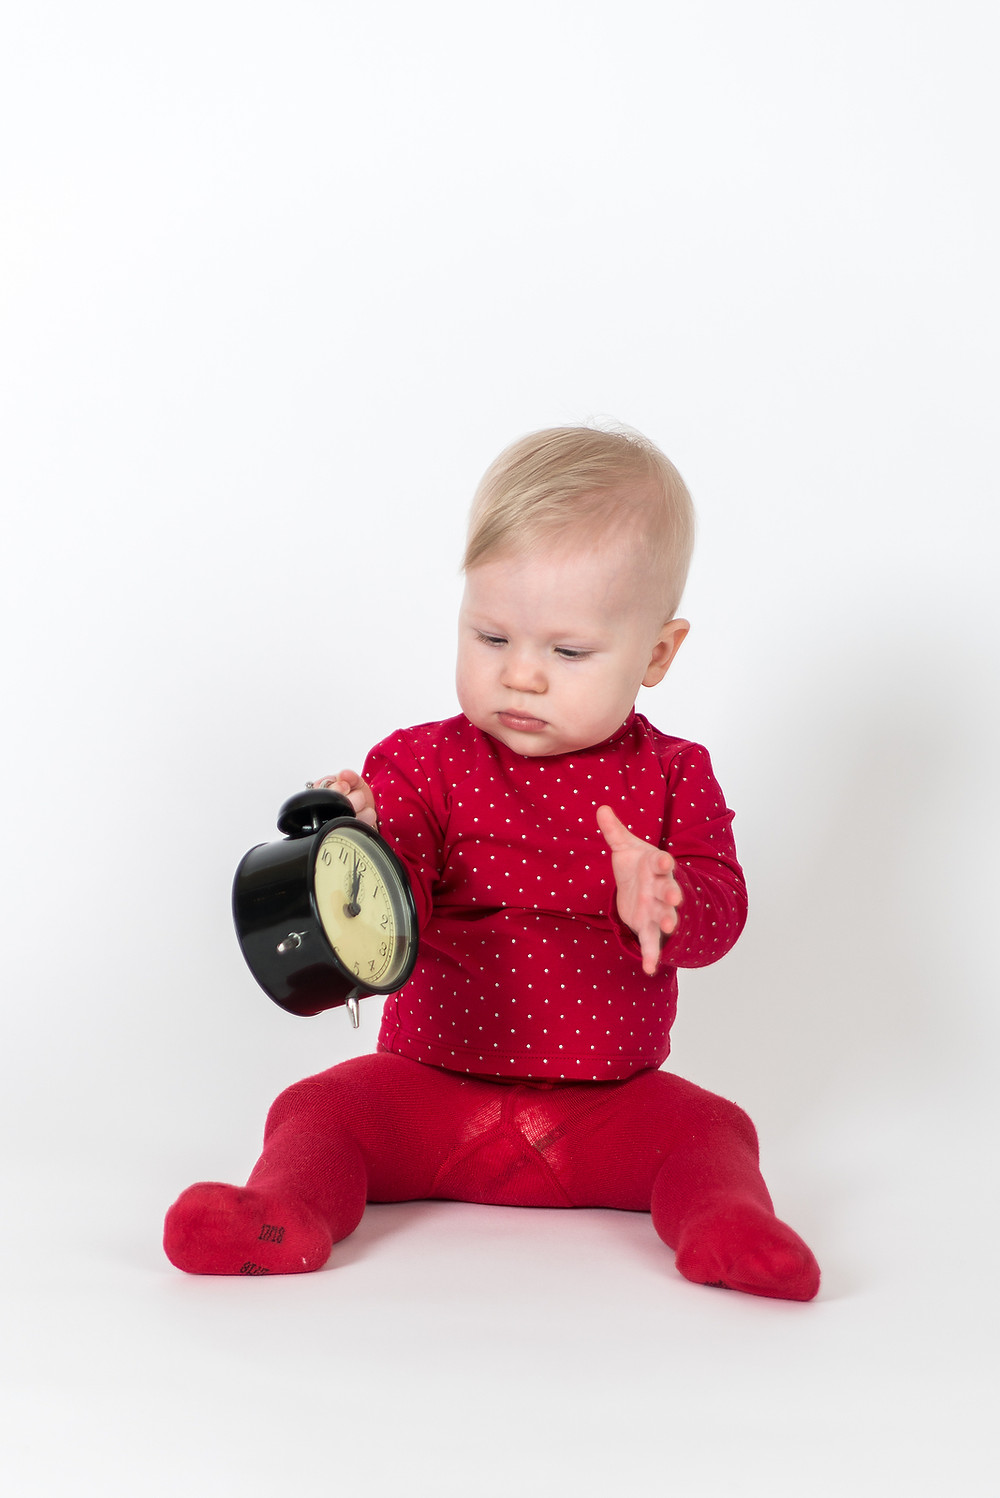 bigstock-Sitting-Baby-With-Clock-In-Red-43647406.jpg